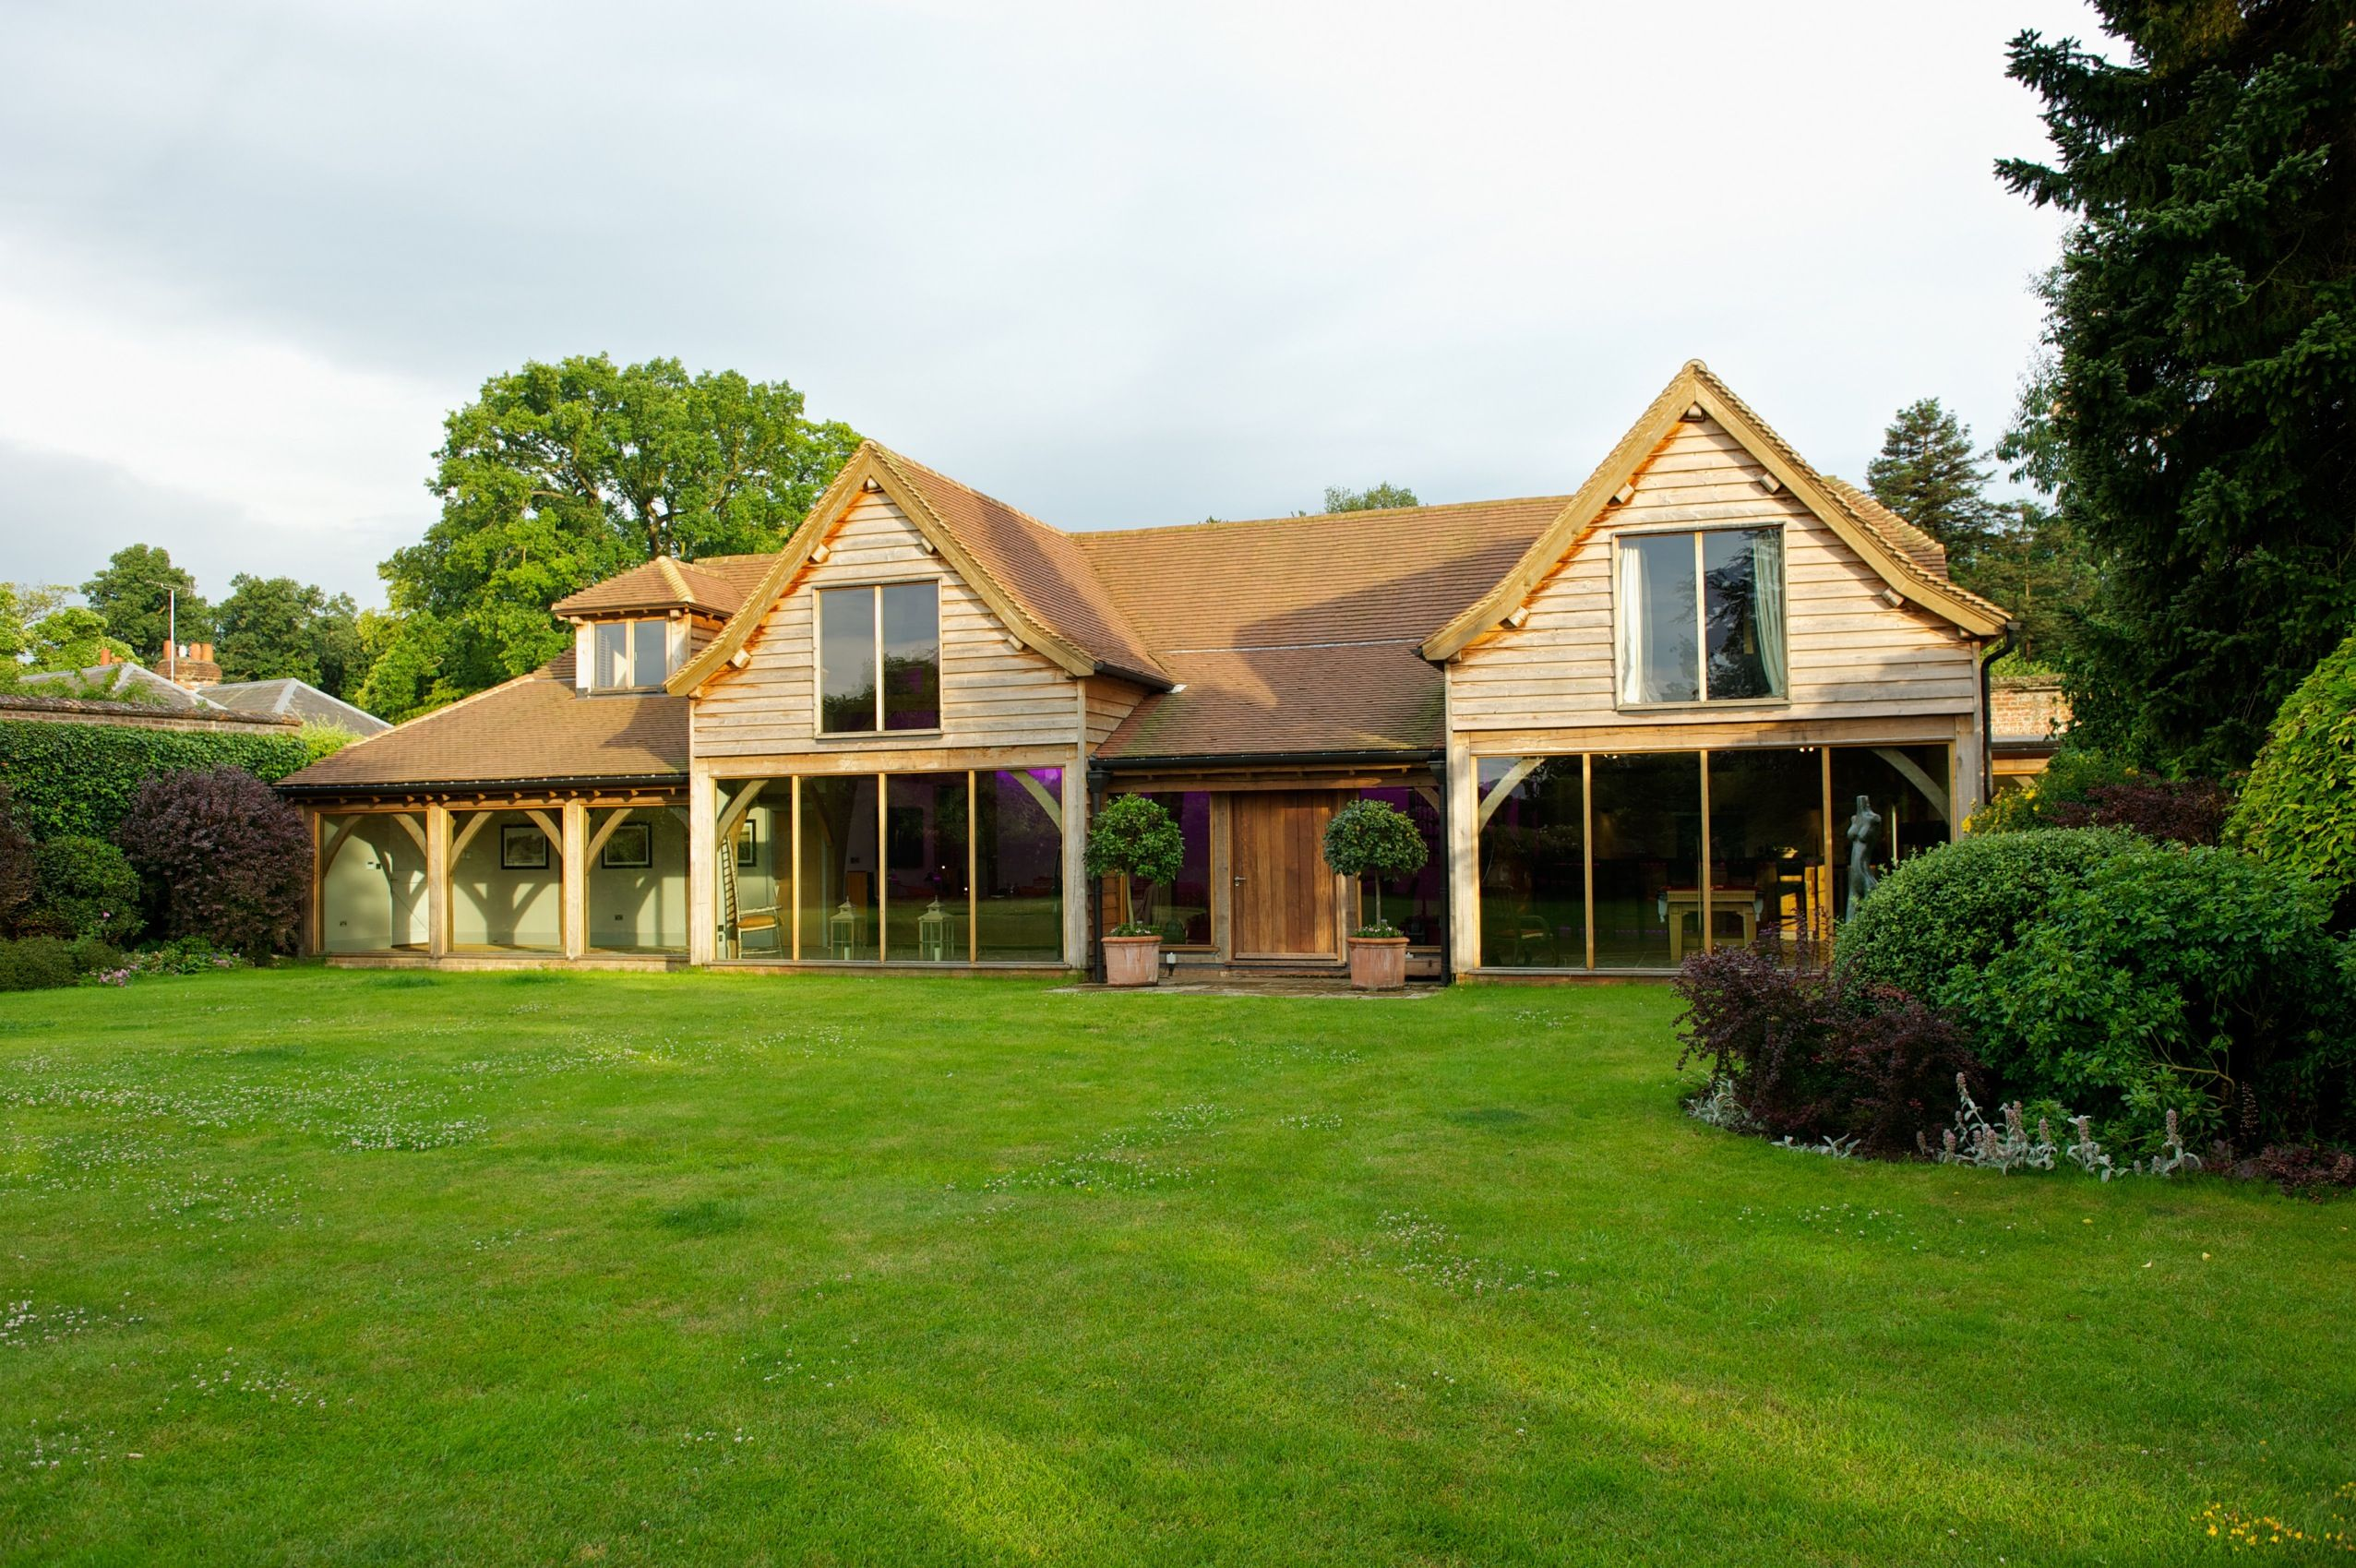 Gorgeous open plan barn style home tucked away at the bottom of an